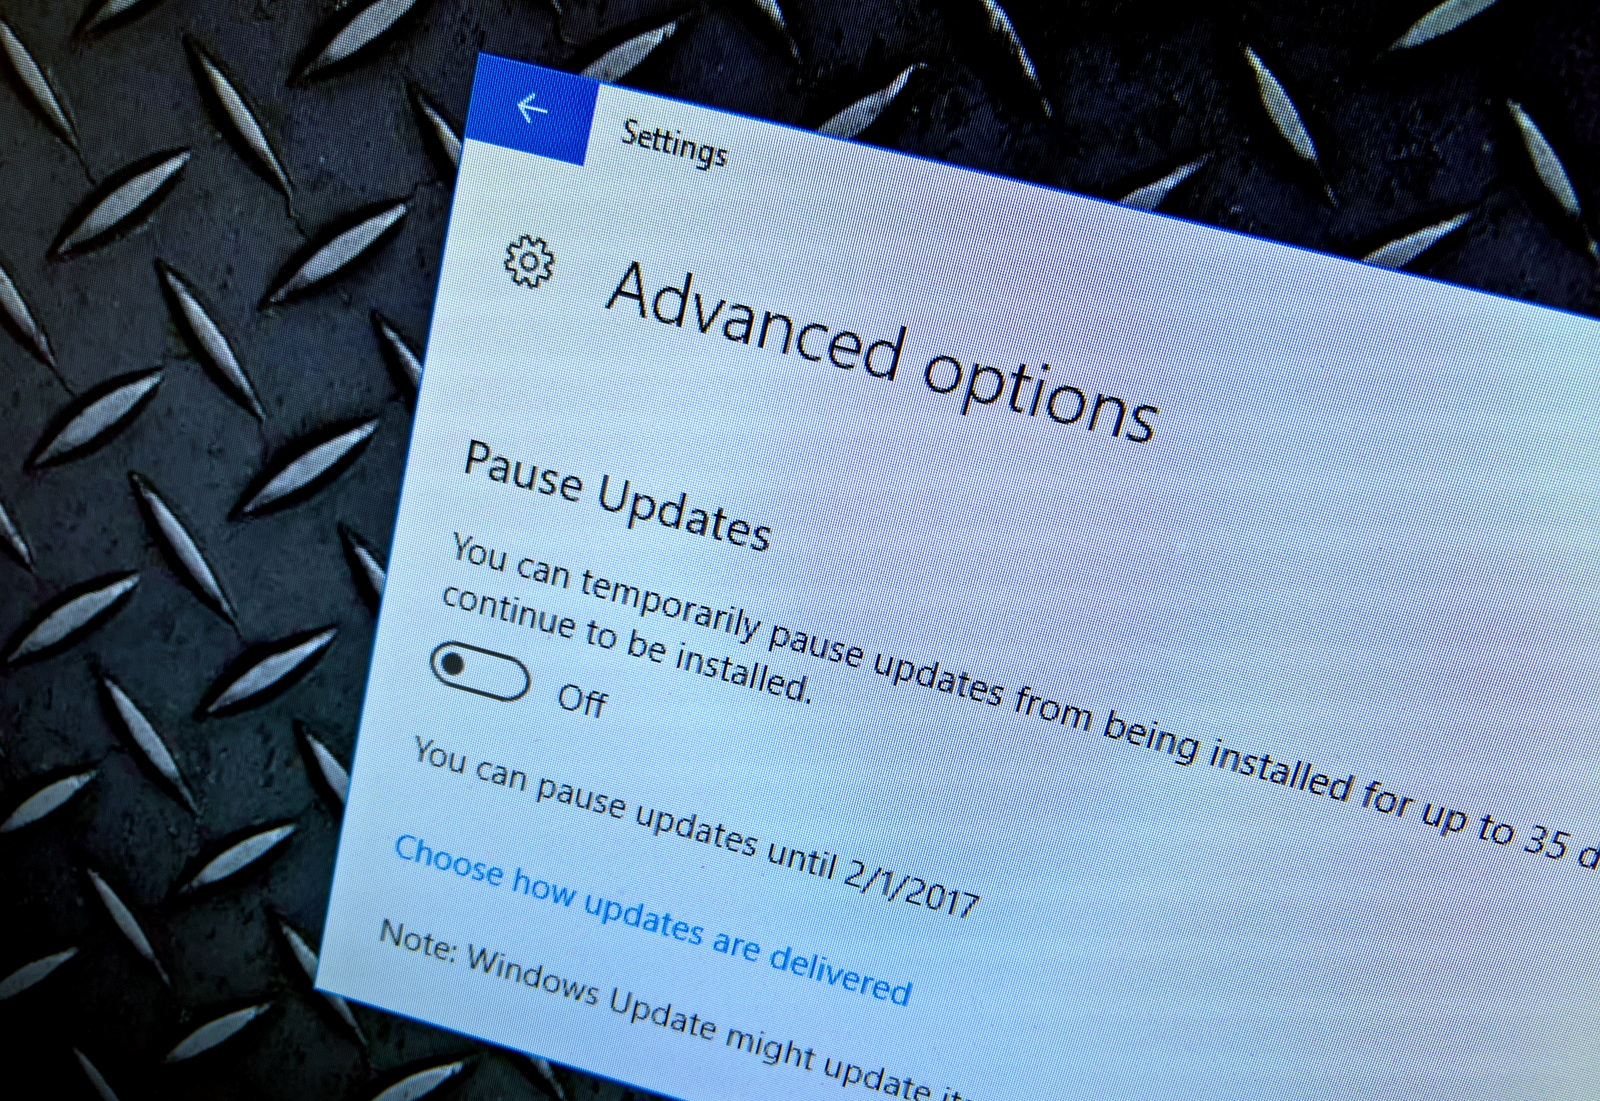 Pause Update settings on Windows 10